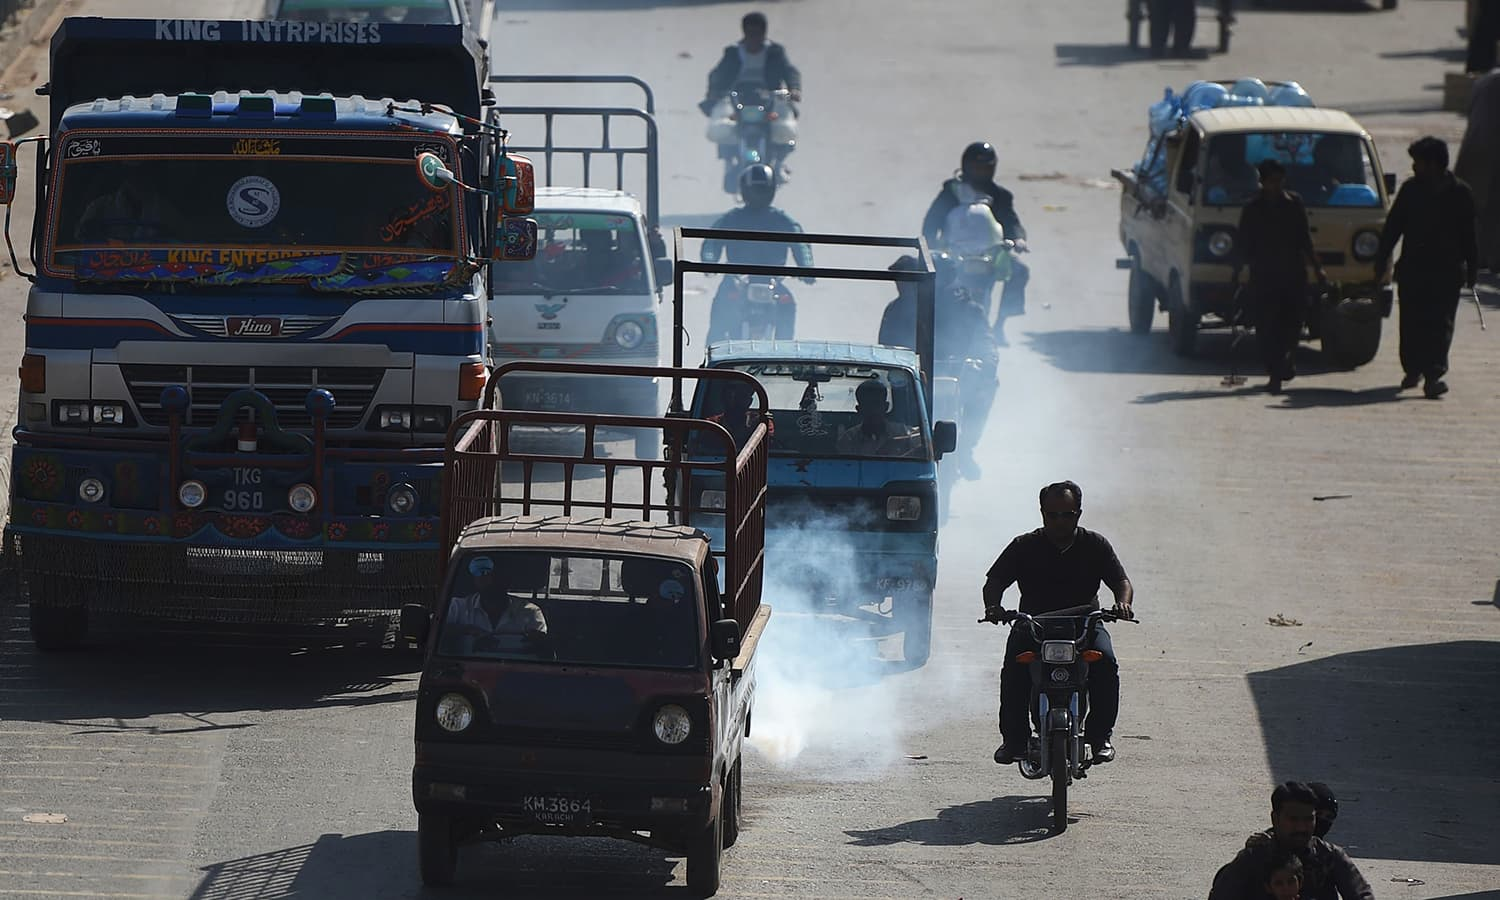 Pakistan's cities are gasping for clean air amid dire warnings from the World Bank, but officials say they are helpless to combat the looming calamity due to a lack of basic data. ─ AFP